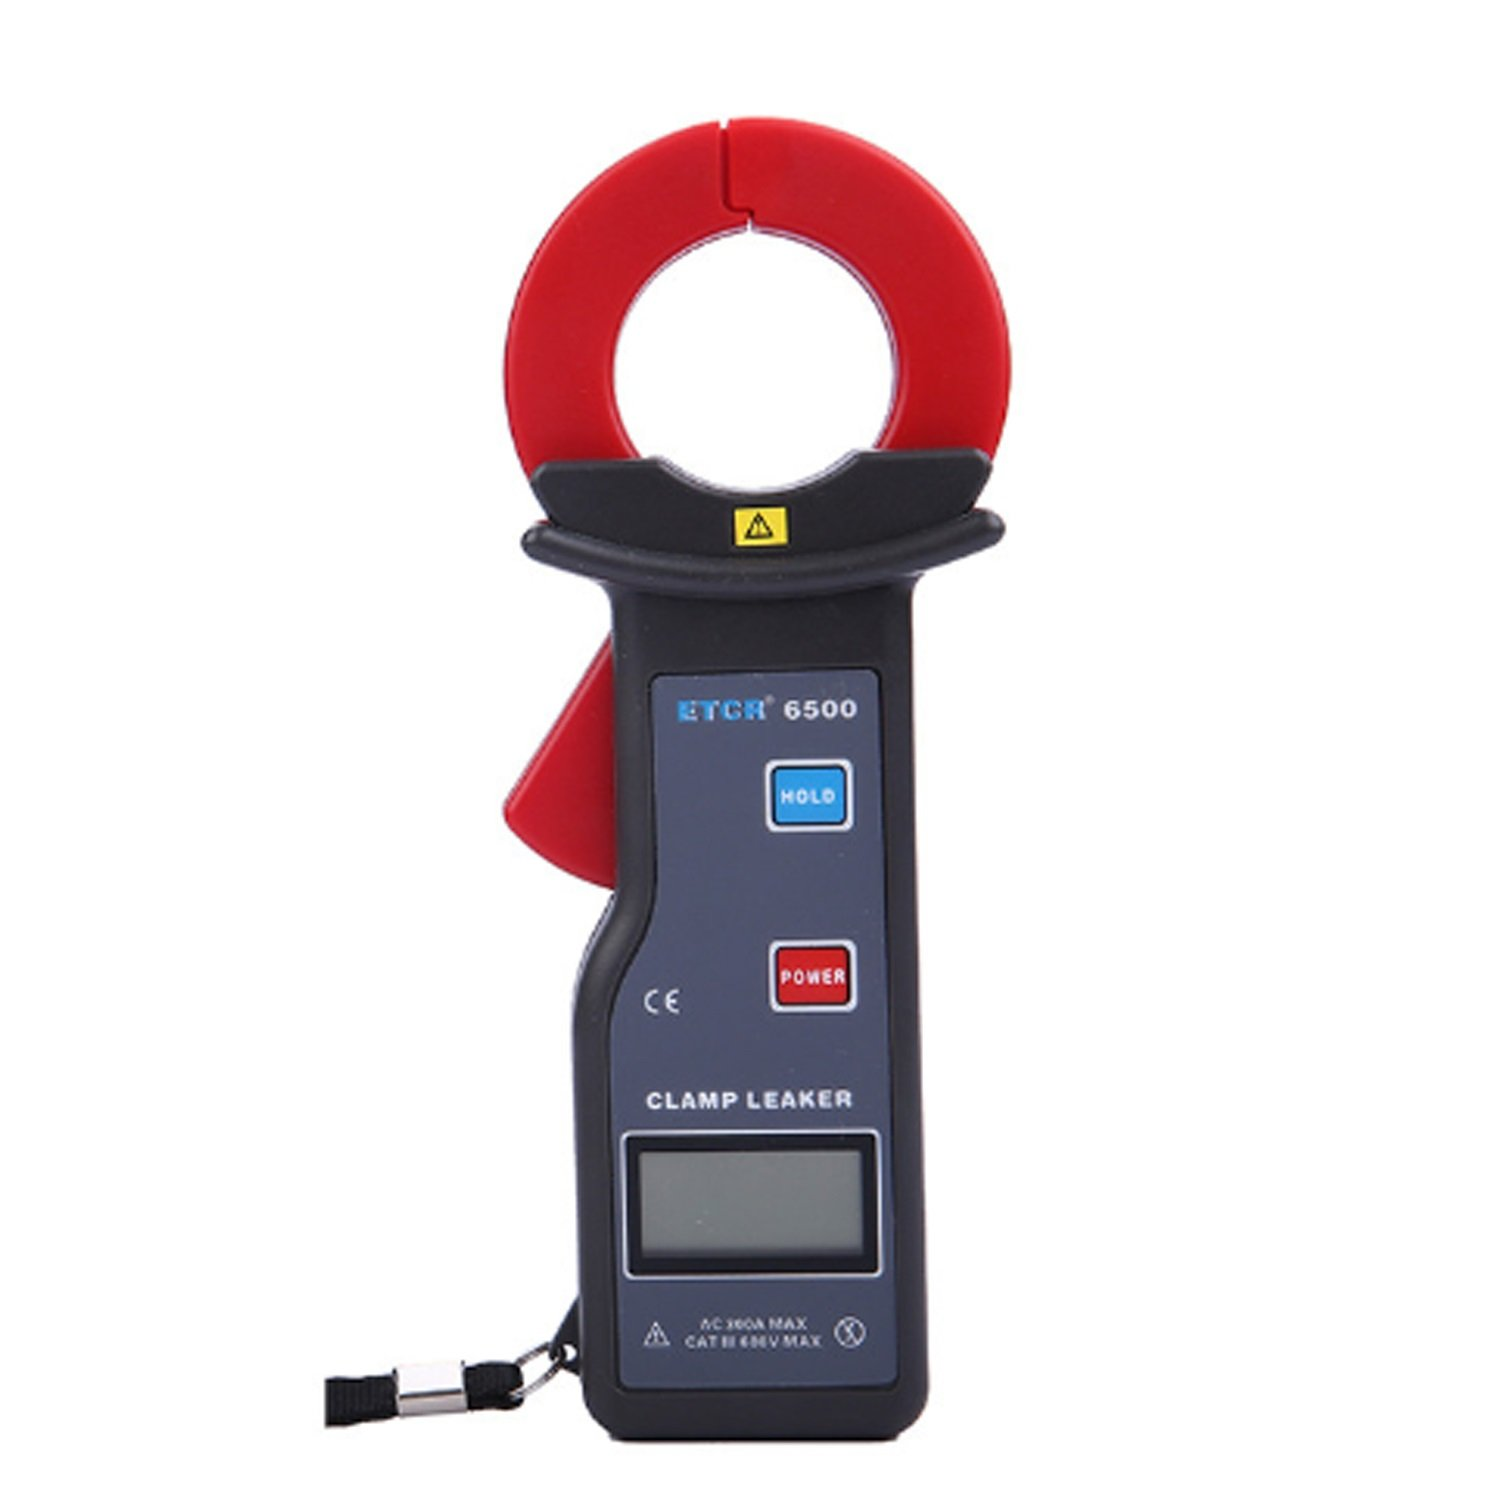 AIYU-MAOYI 0~300A High Accuracy Digital Clamp Meter Leakage Current Measurement with RS232 Interface 500 Datas Storage ETCR6500